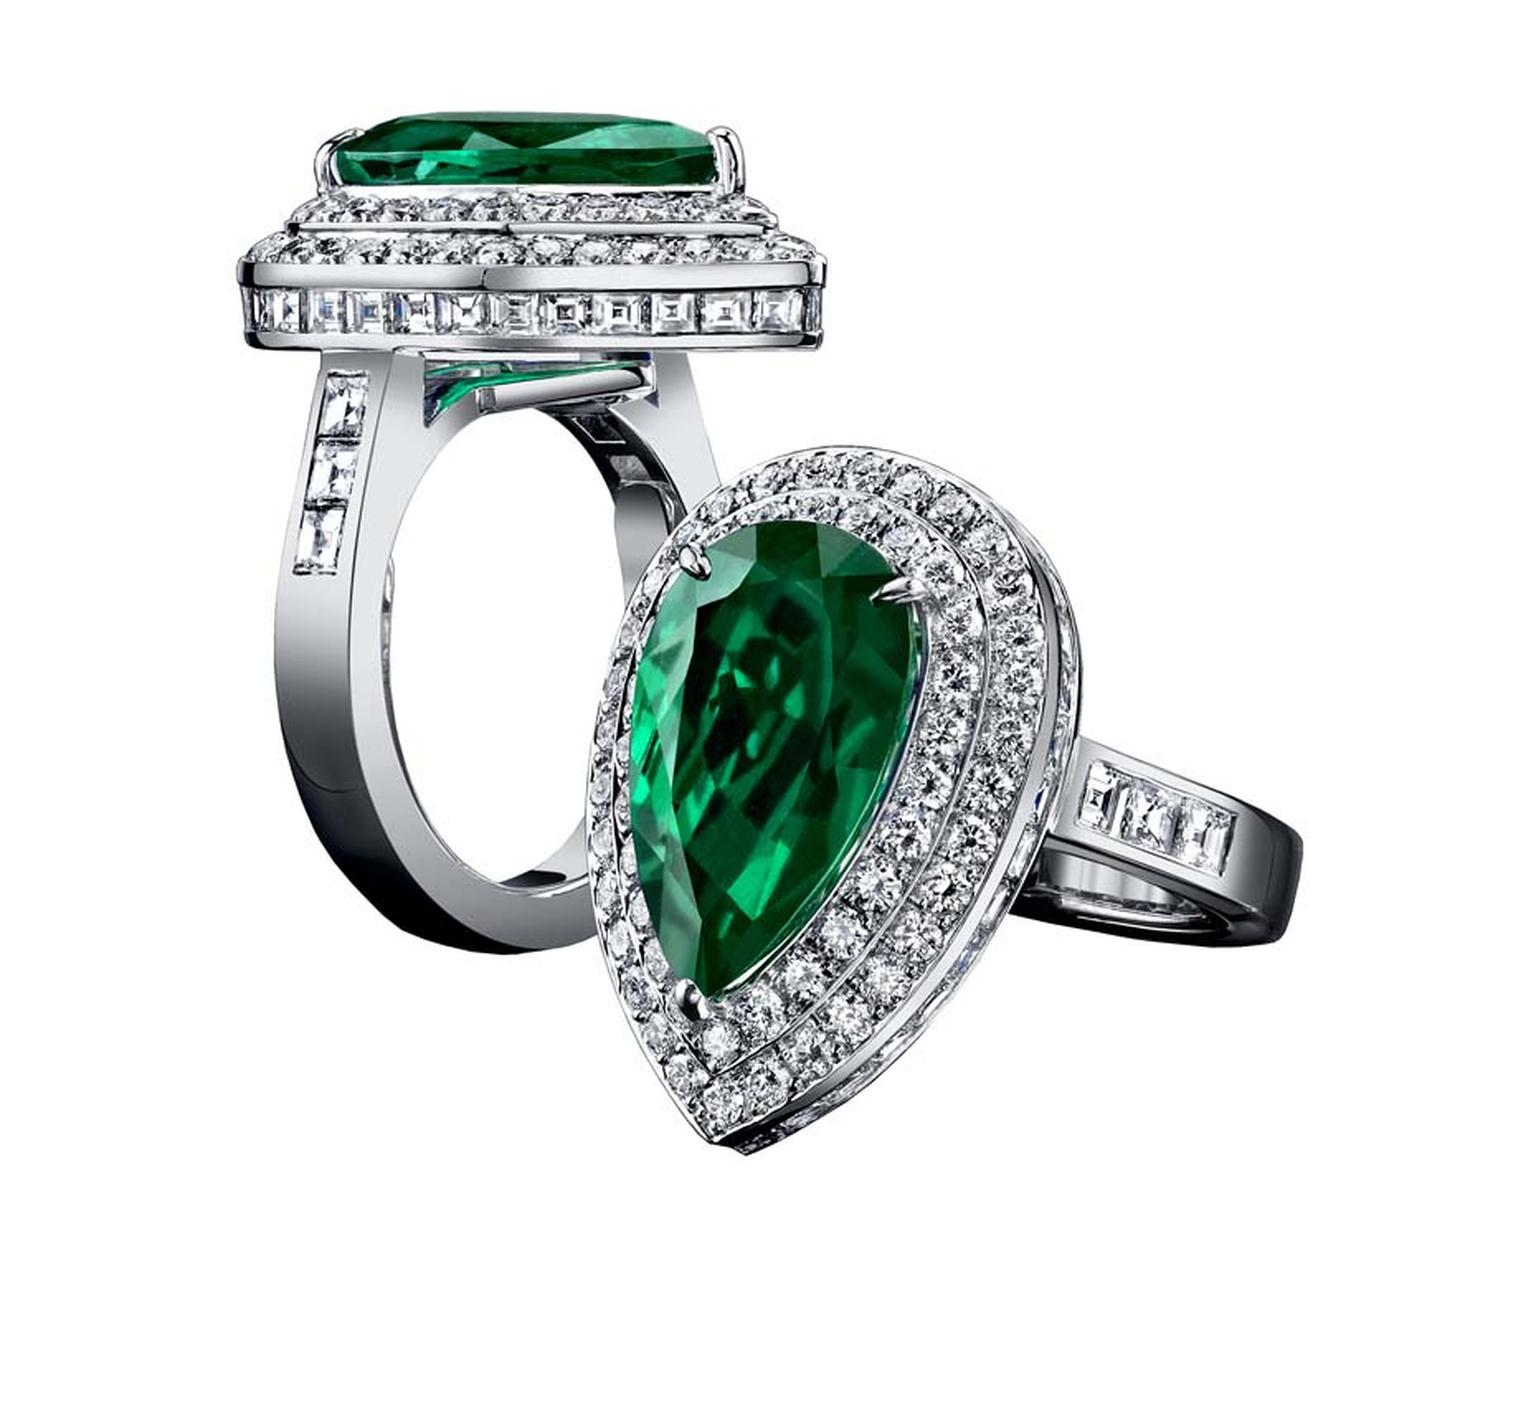 Robert Procop Exceptional Jewels collection 6.35ct pear shape Emerald ring surrounded by two tiers of diamonds